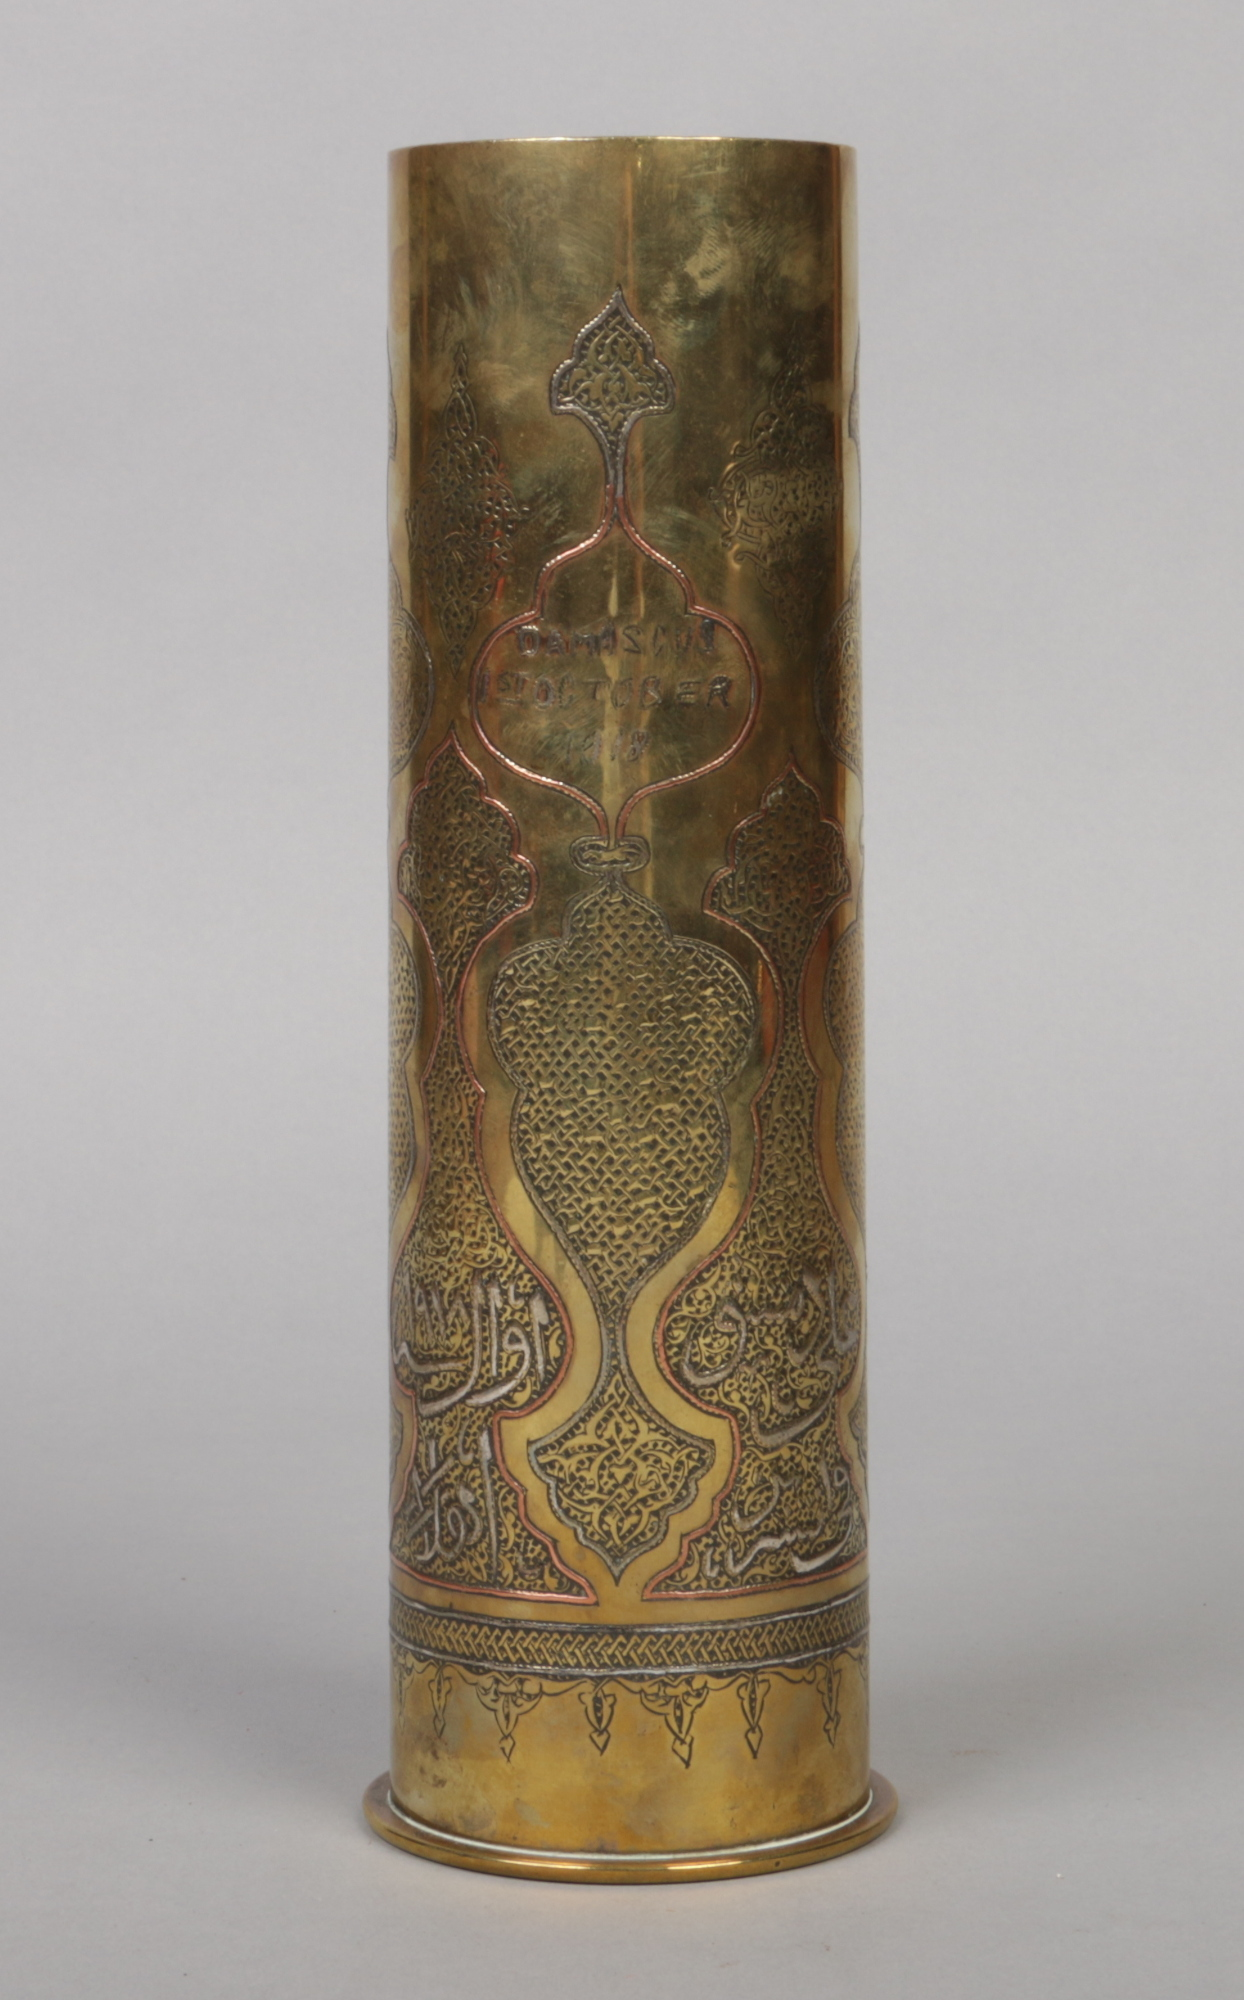 Lot 355 - A German First World War Trench Art brass shell casing. With Islamic engraved, silver and copper